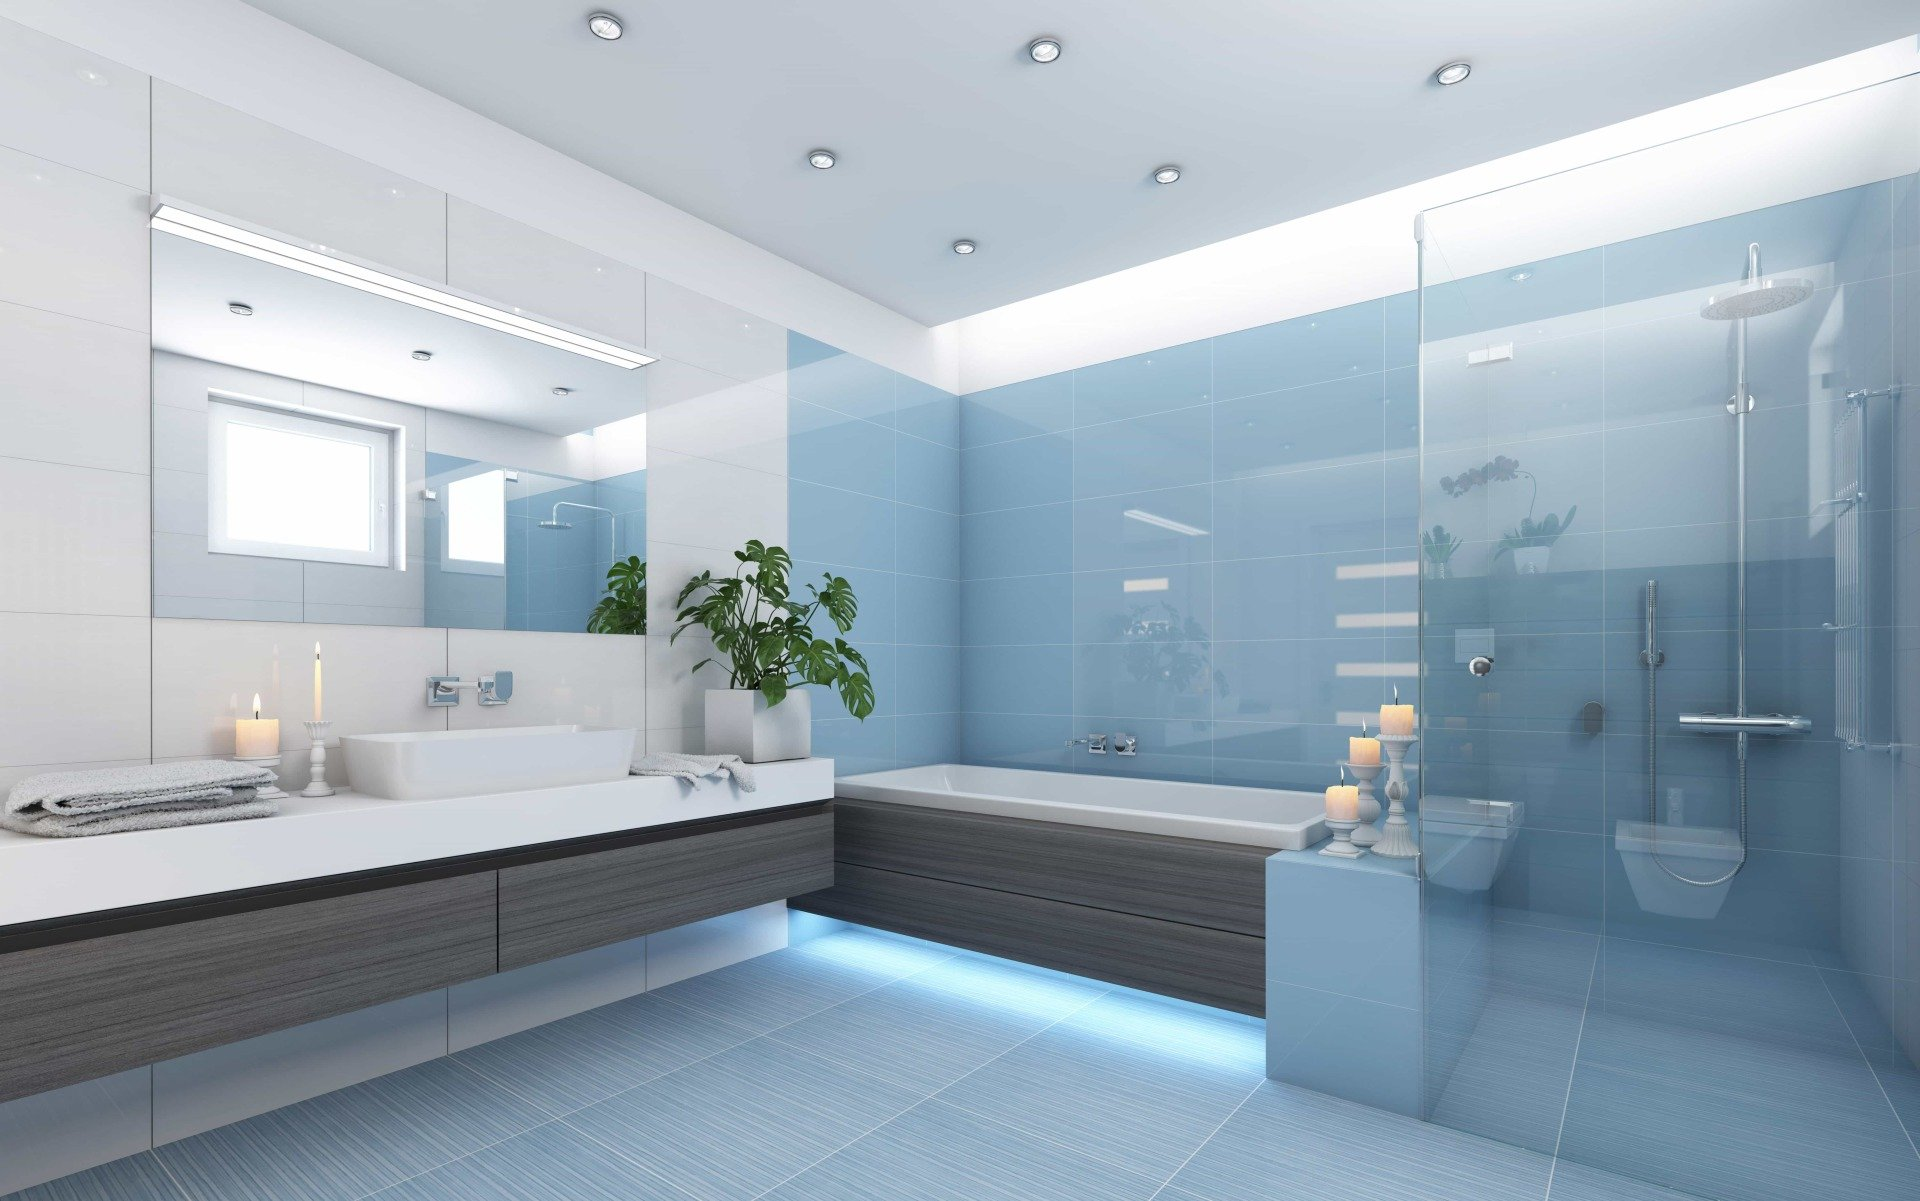 7 Reasons Why Frameless Shower Doors Are The Way To Go